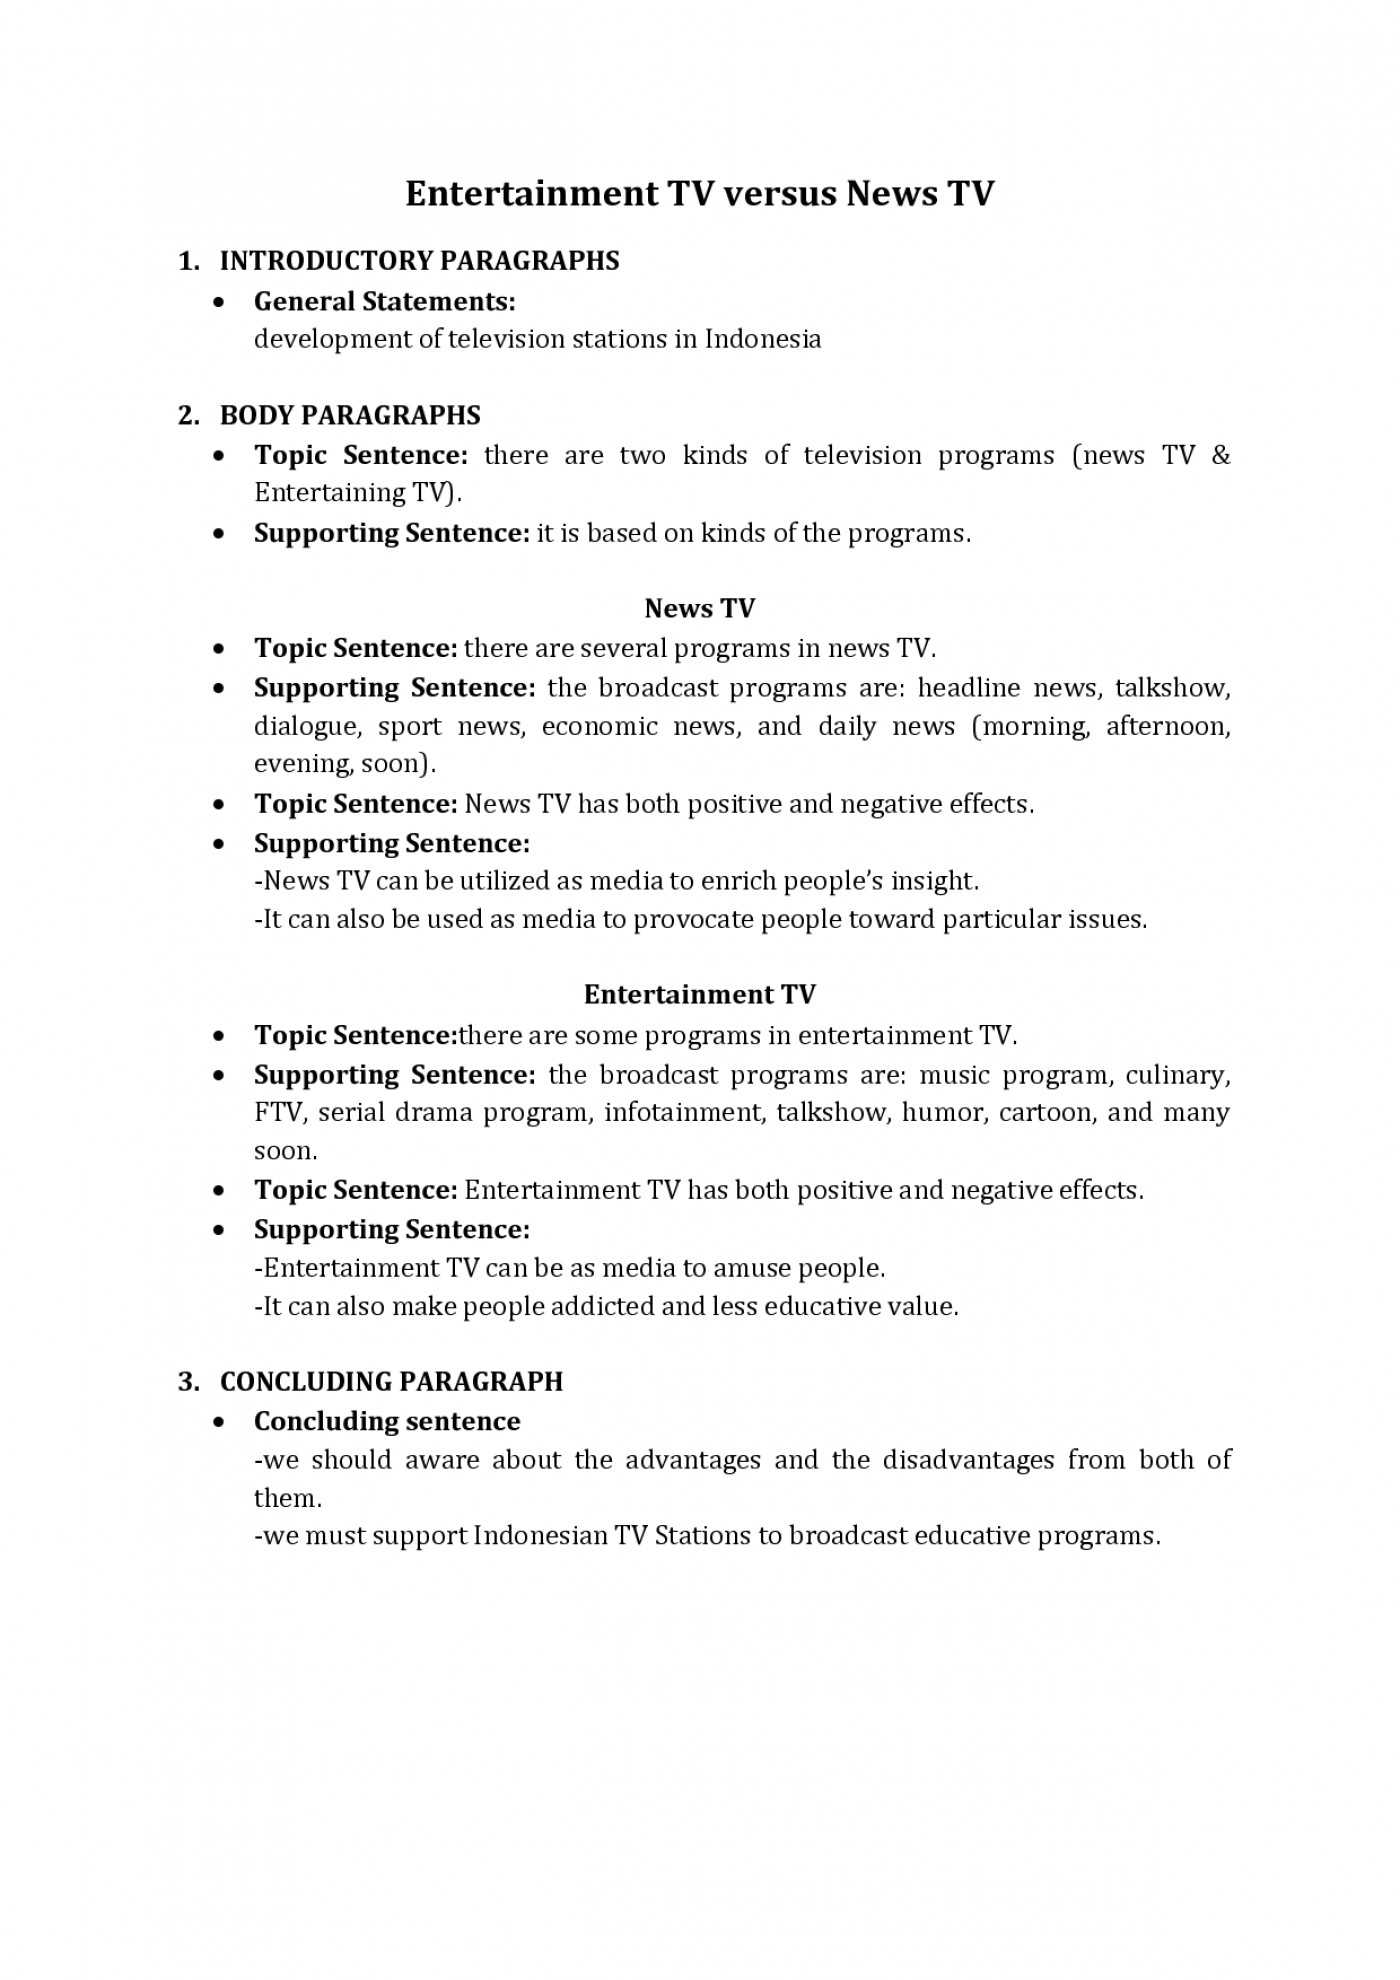 005 Fbunmxinib How To Write An Essay Outline Excellent In Mla Format For University 1400